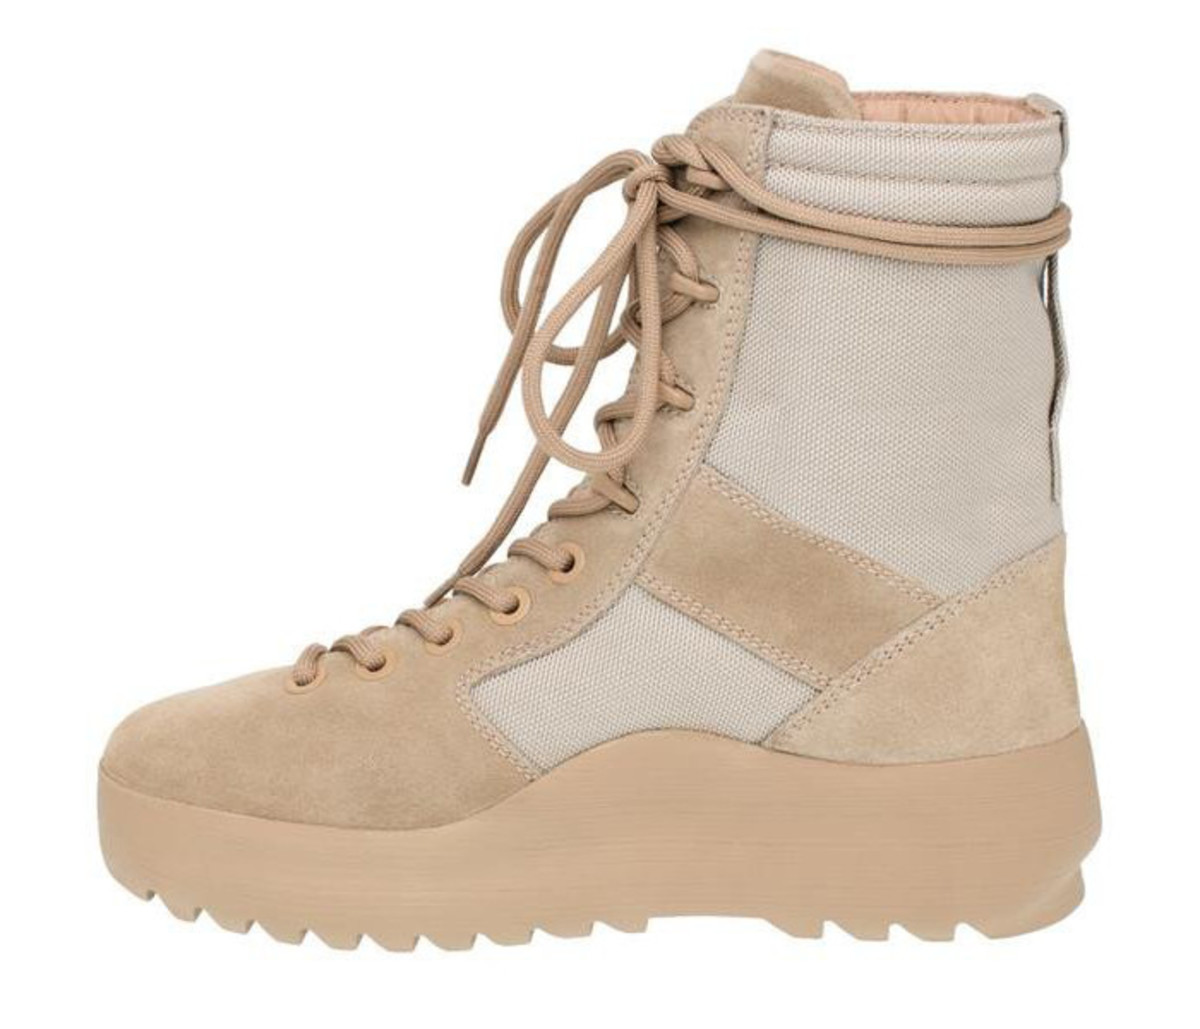 yeezy-season-3-military-boot-04.jpg